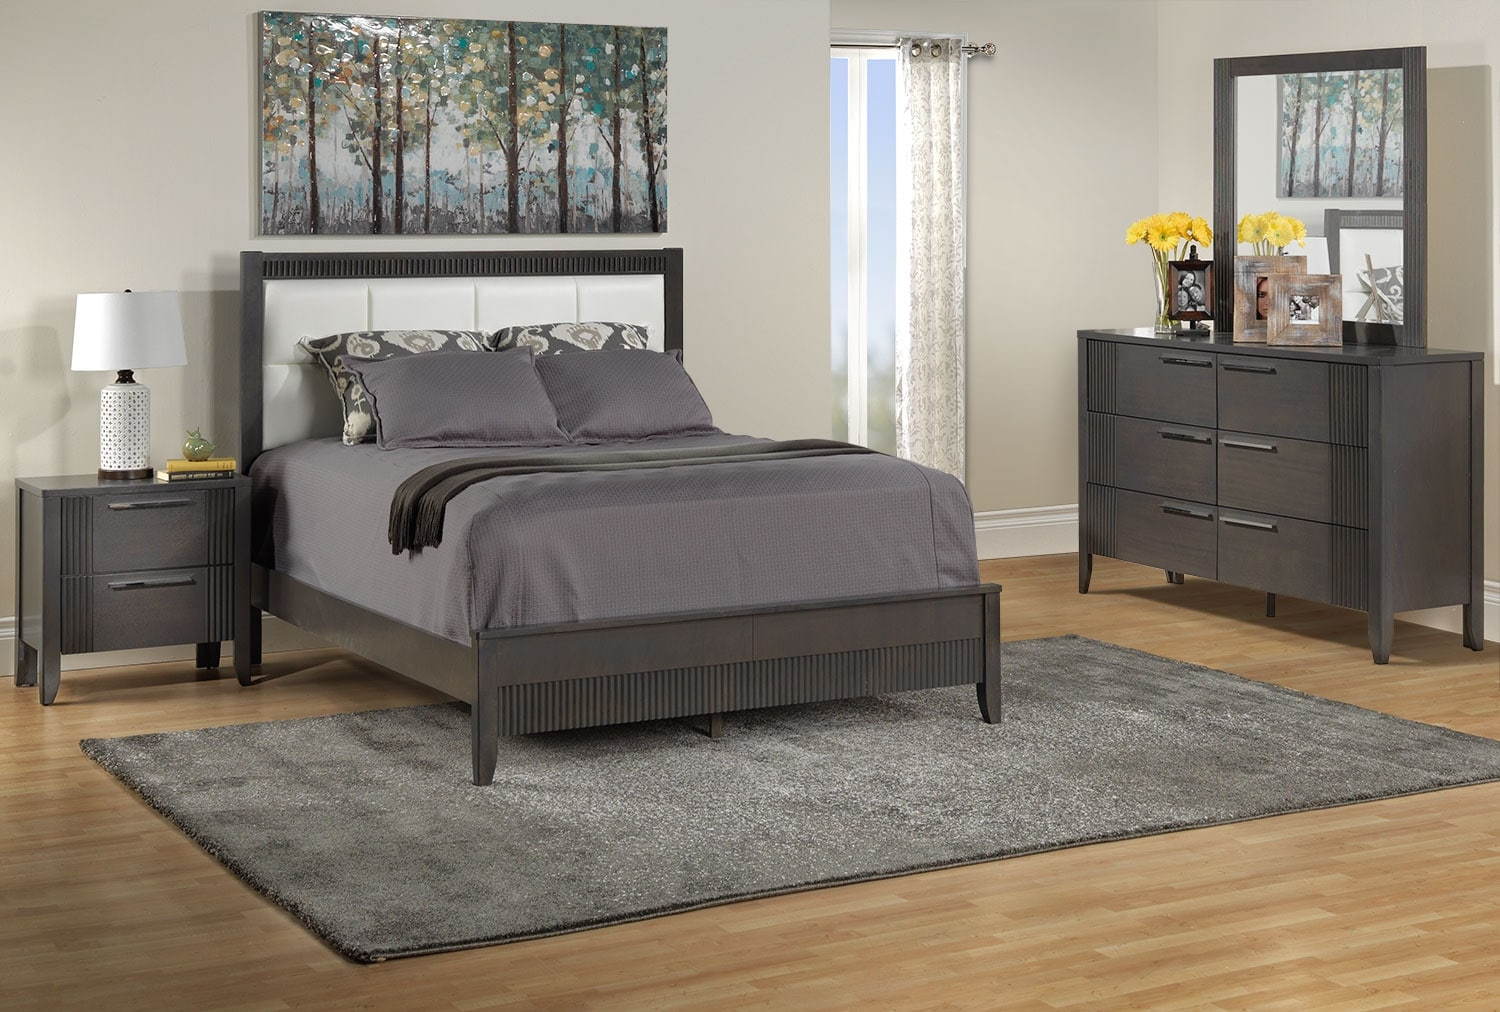 Bedroom Furniture - Amy 5 Pc. King Bedroom Package - Grey